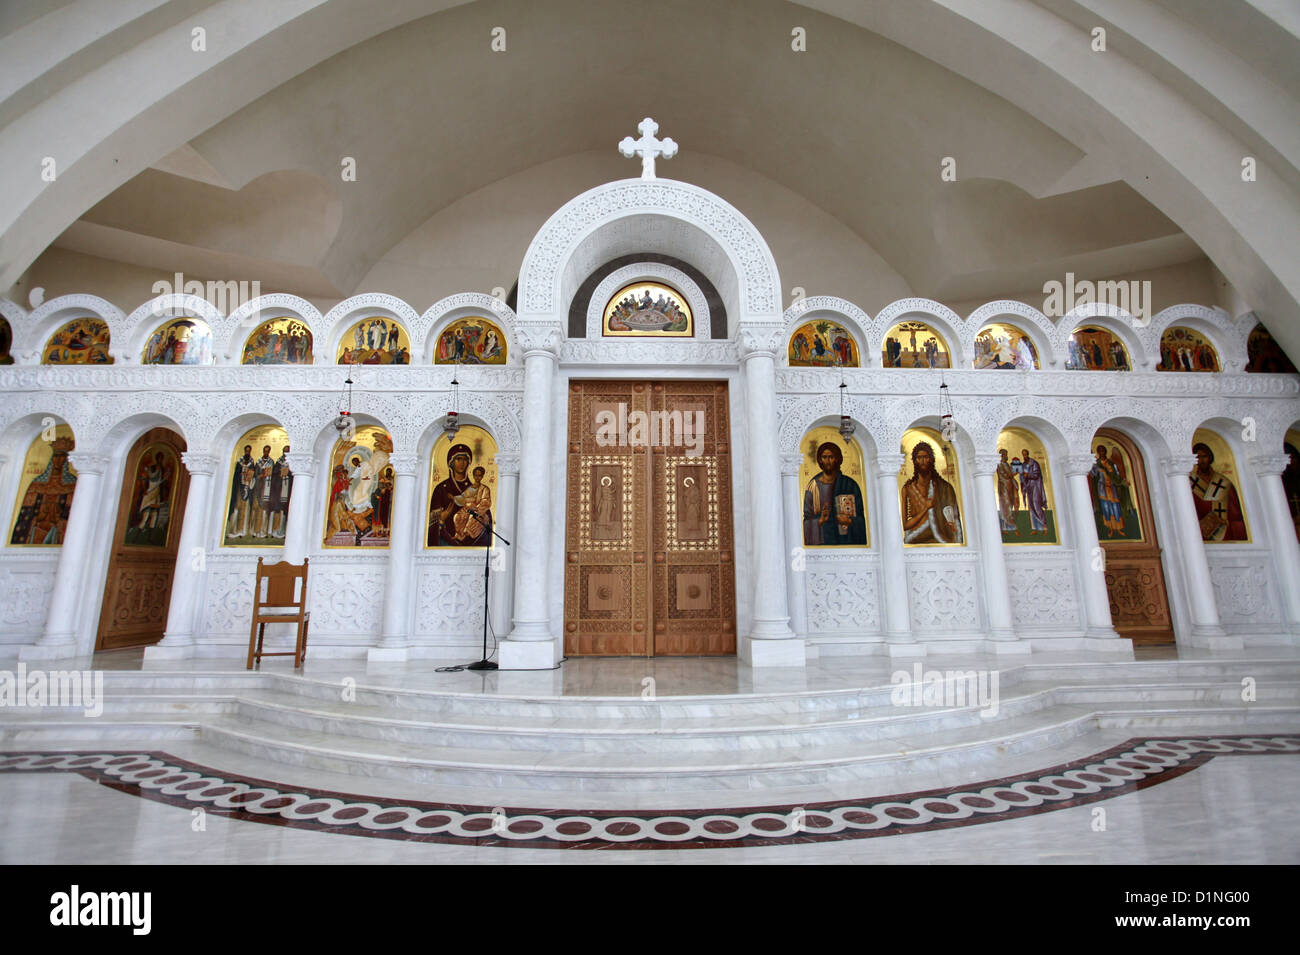 Inside the new Orthodox Cathedral of the Resurrection of Christ in Tirana which was opened in June 2012 - Stock Image